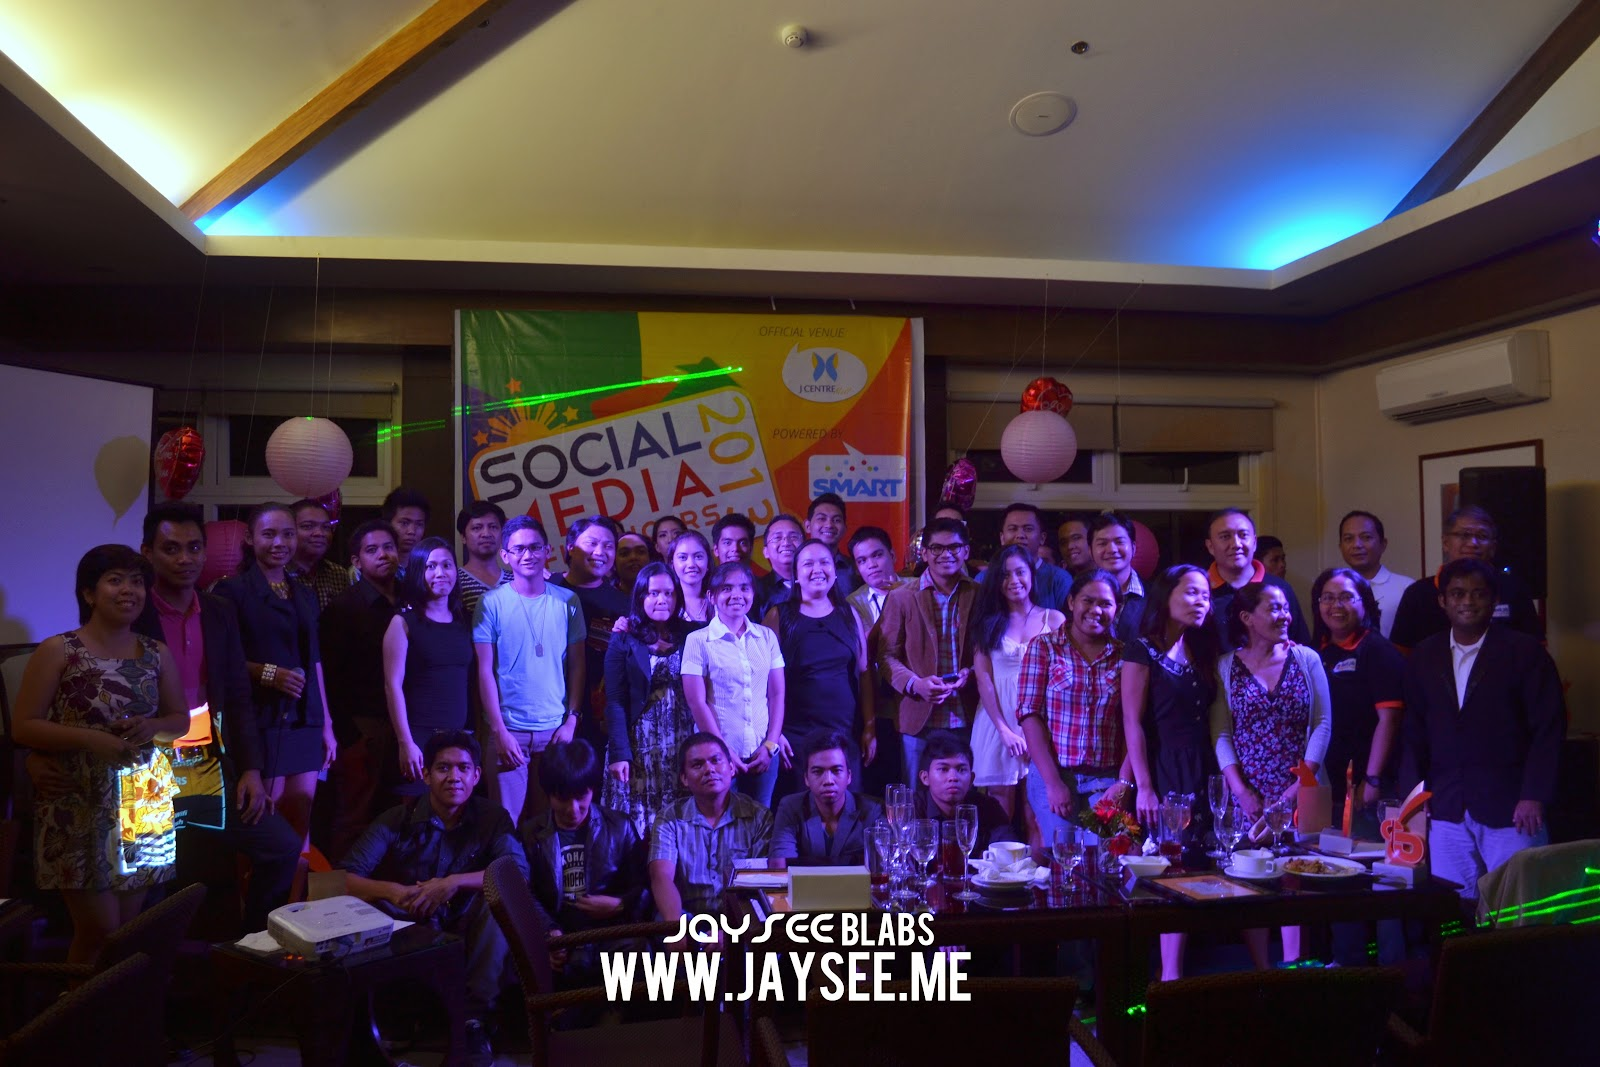 jaysee pingkian jayseeblabs cebu bloggers The CBSi family with our partners!